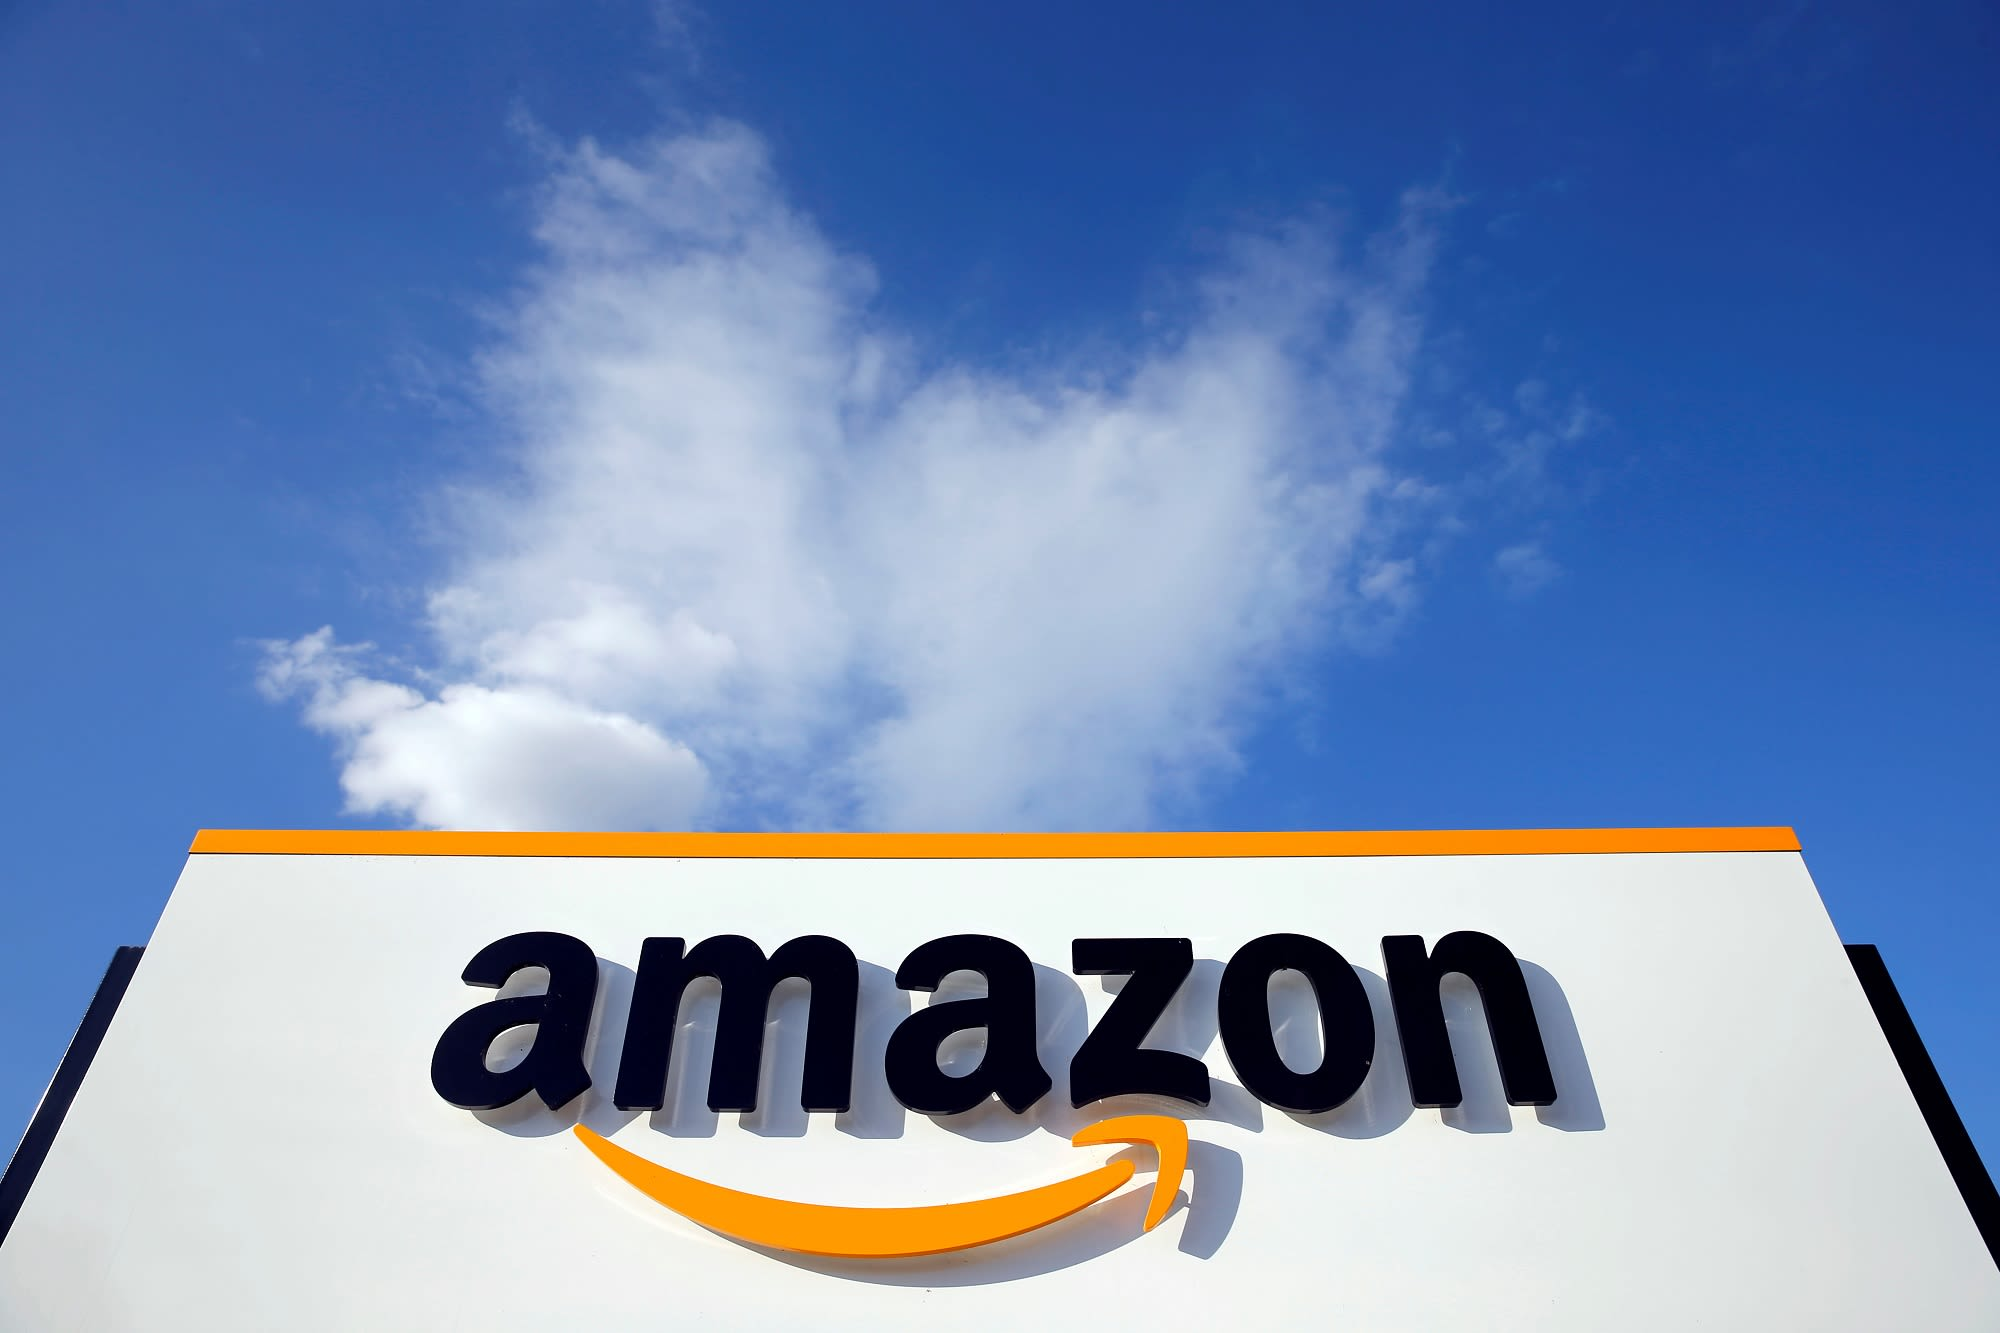 Amazon will debut at NewFronts this year